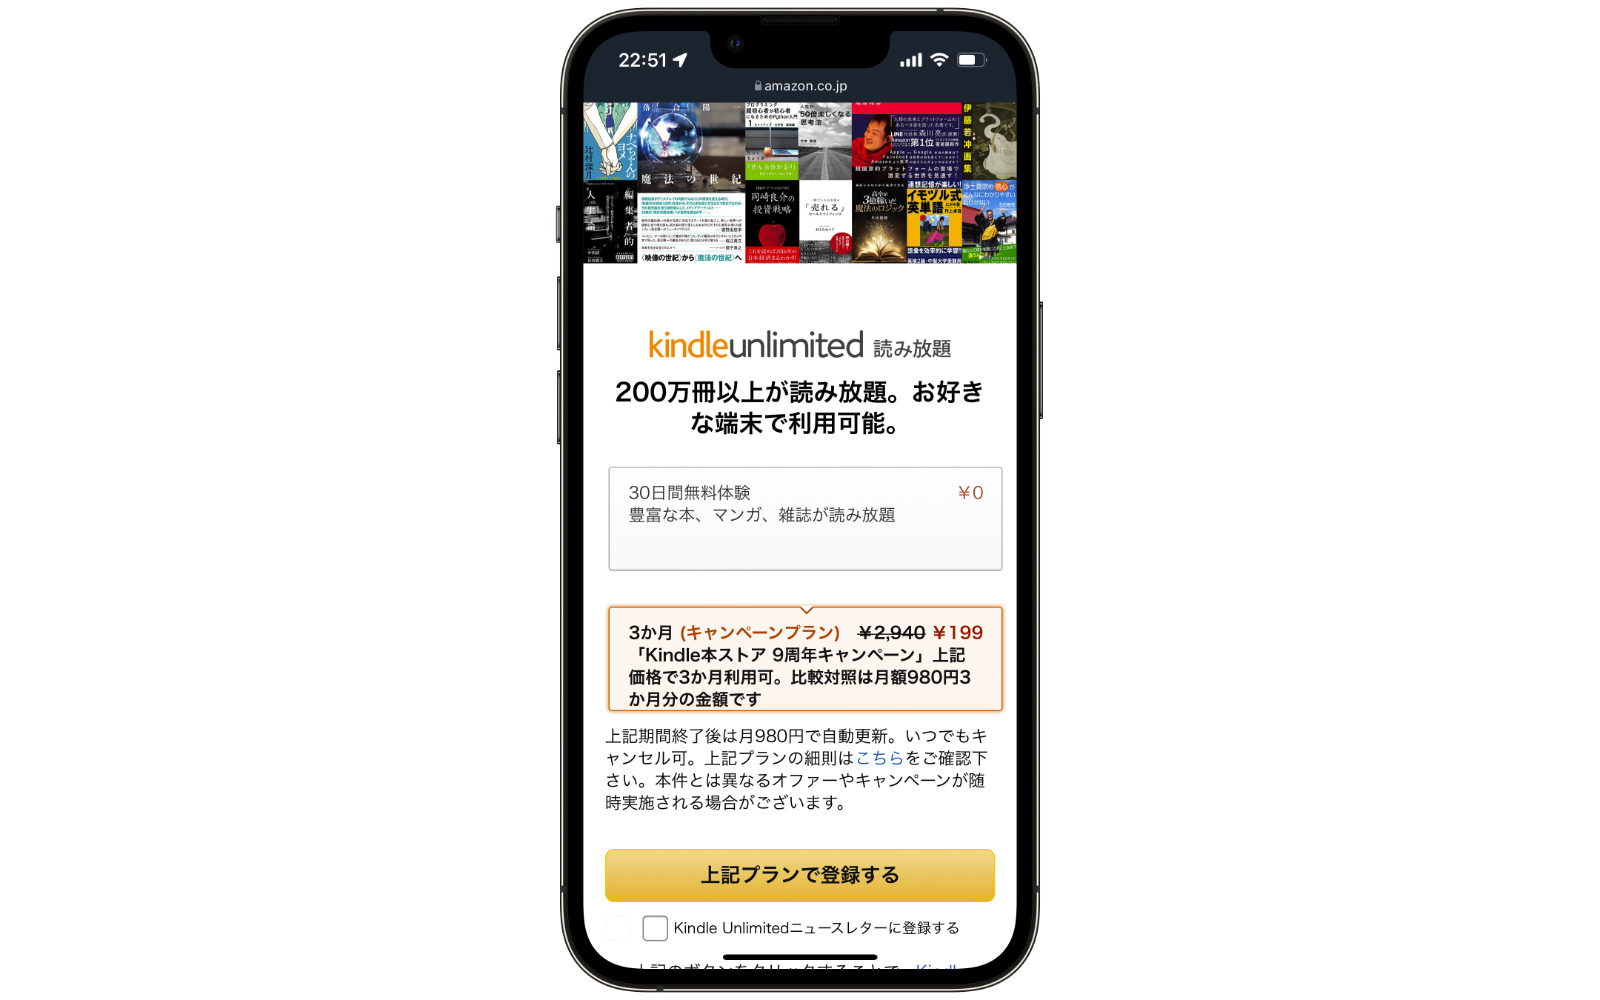 Kindle Unlimited 9year campaign 2